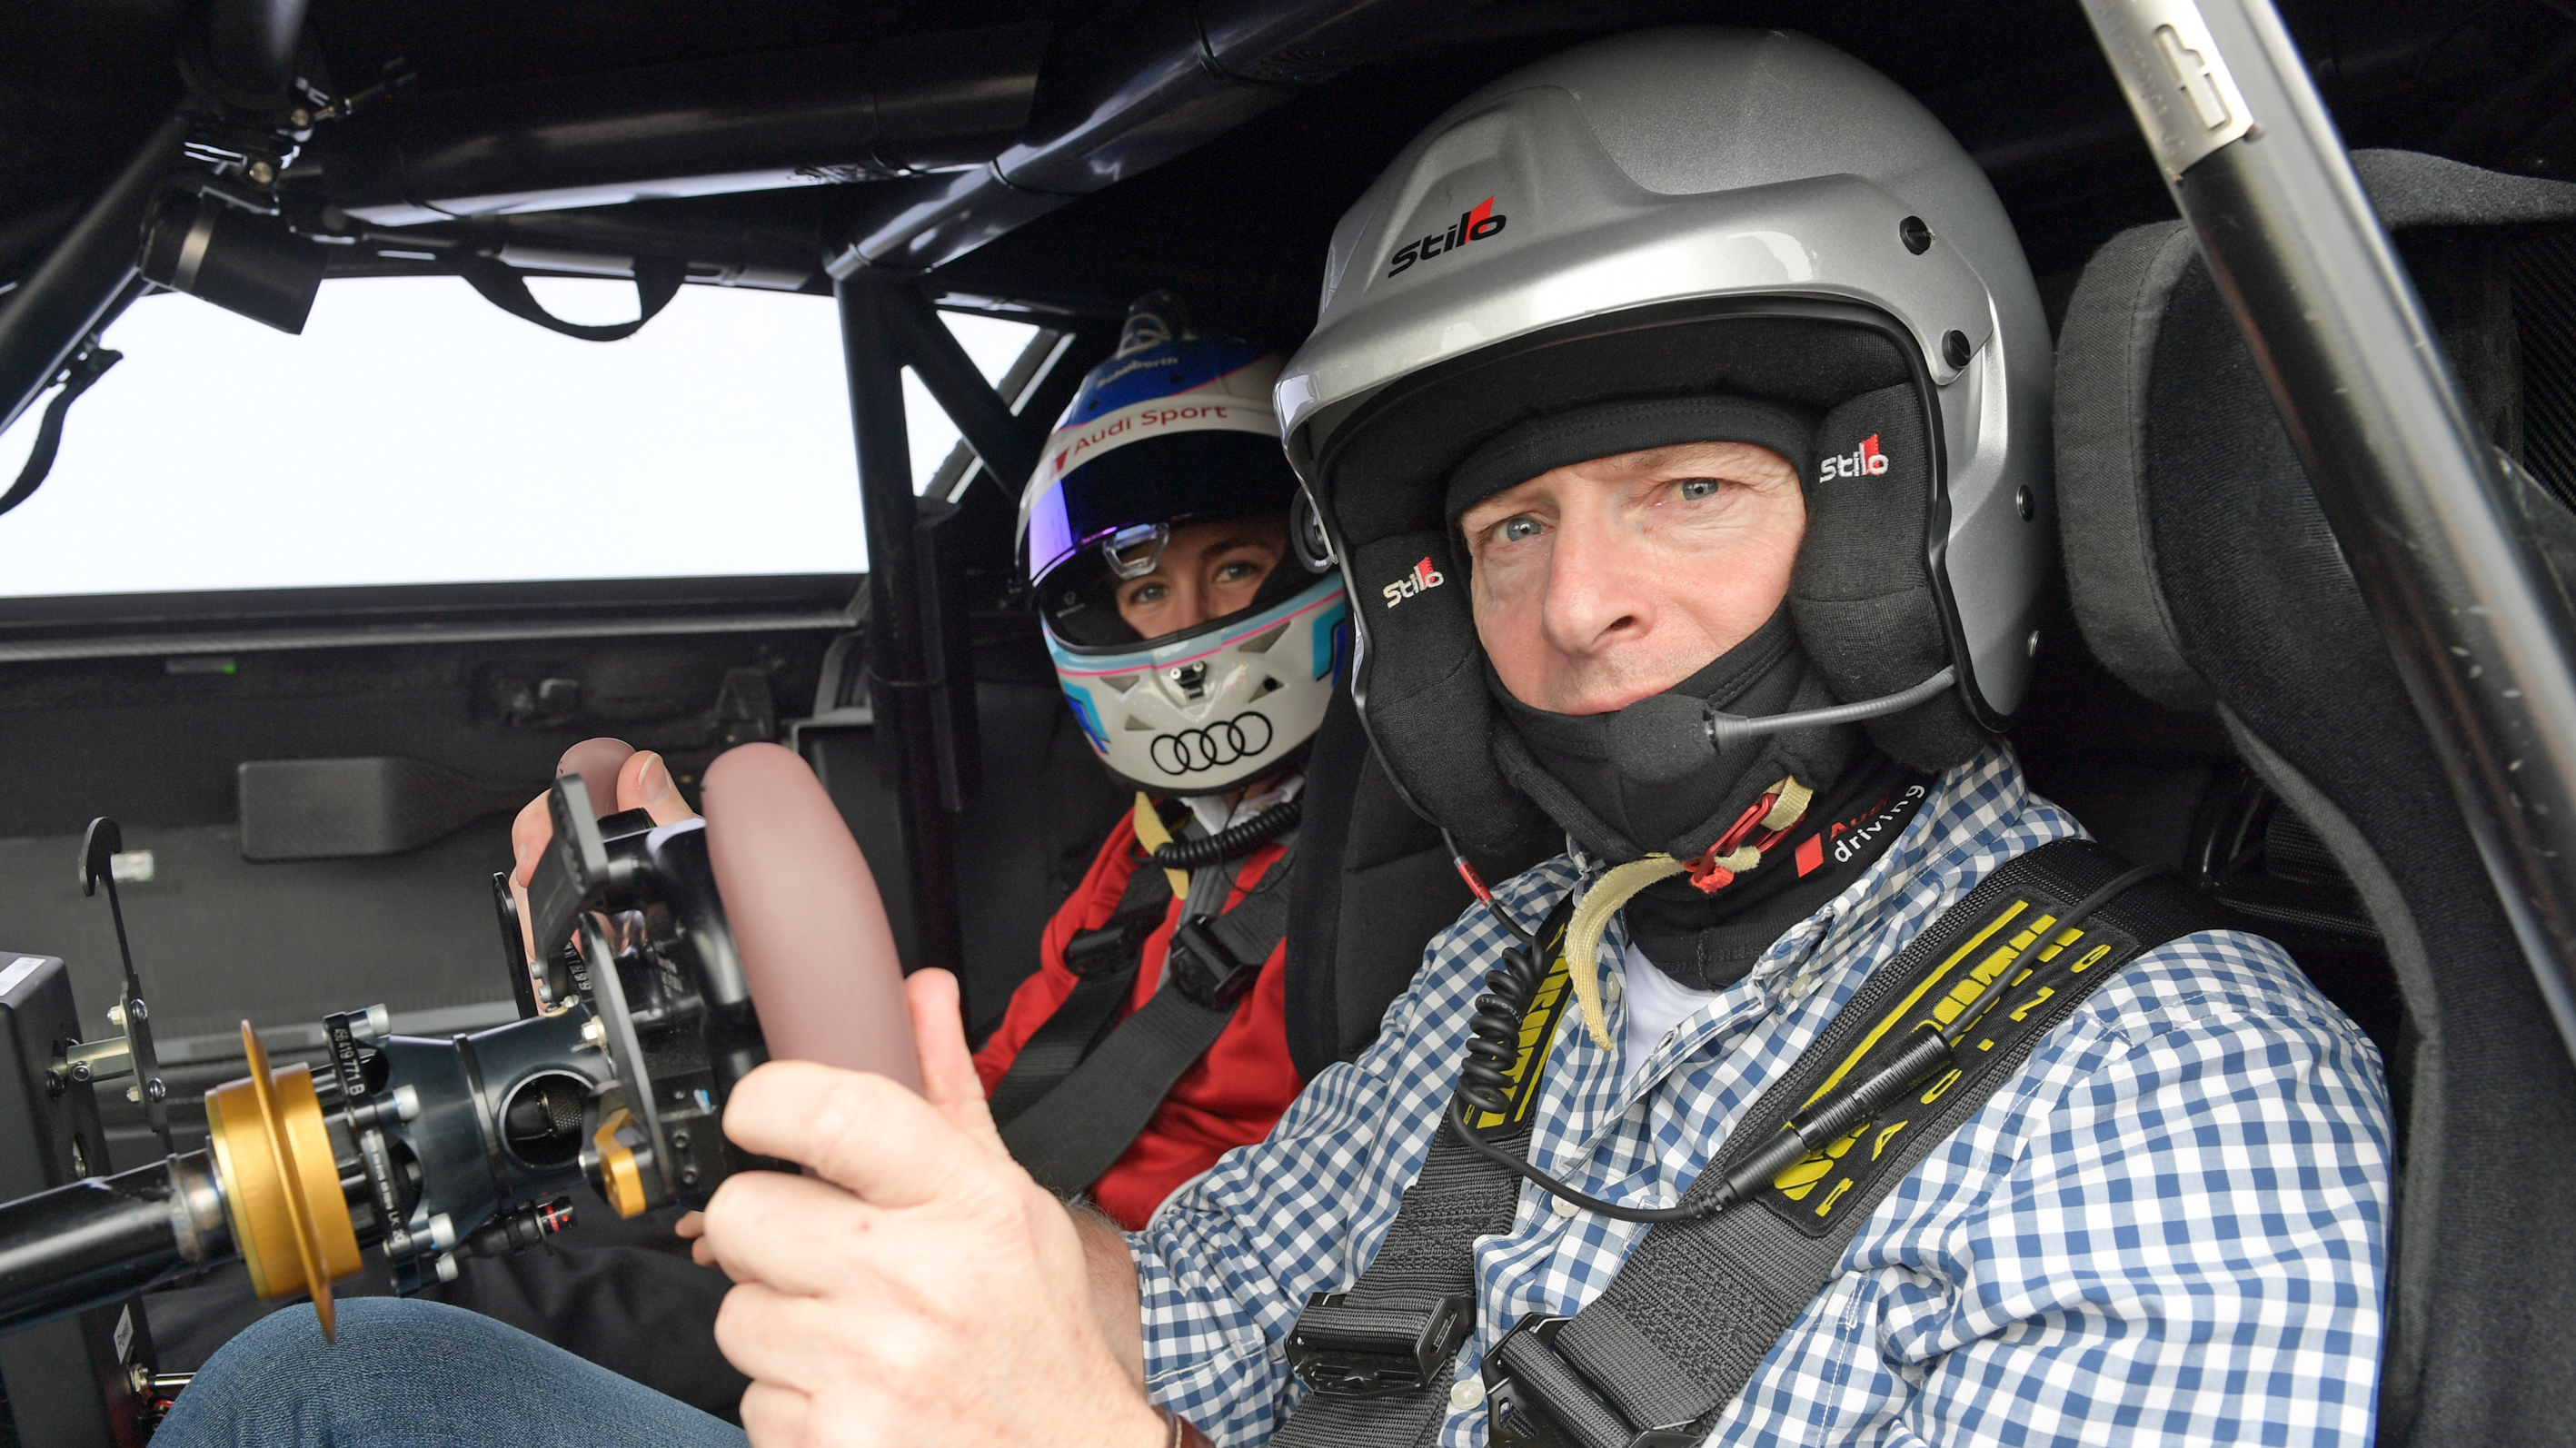 Greg Kable and Rahel Frey in the Audi e-tron Vision Gran Turismo.